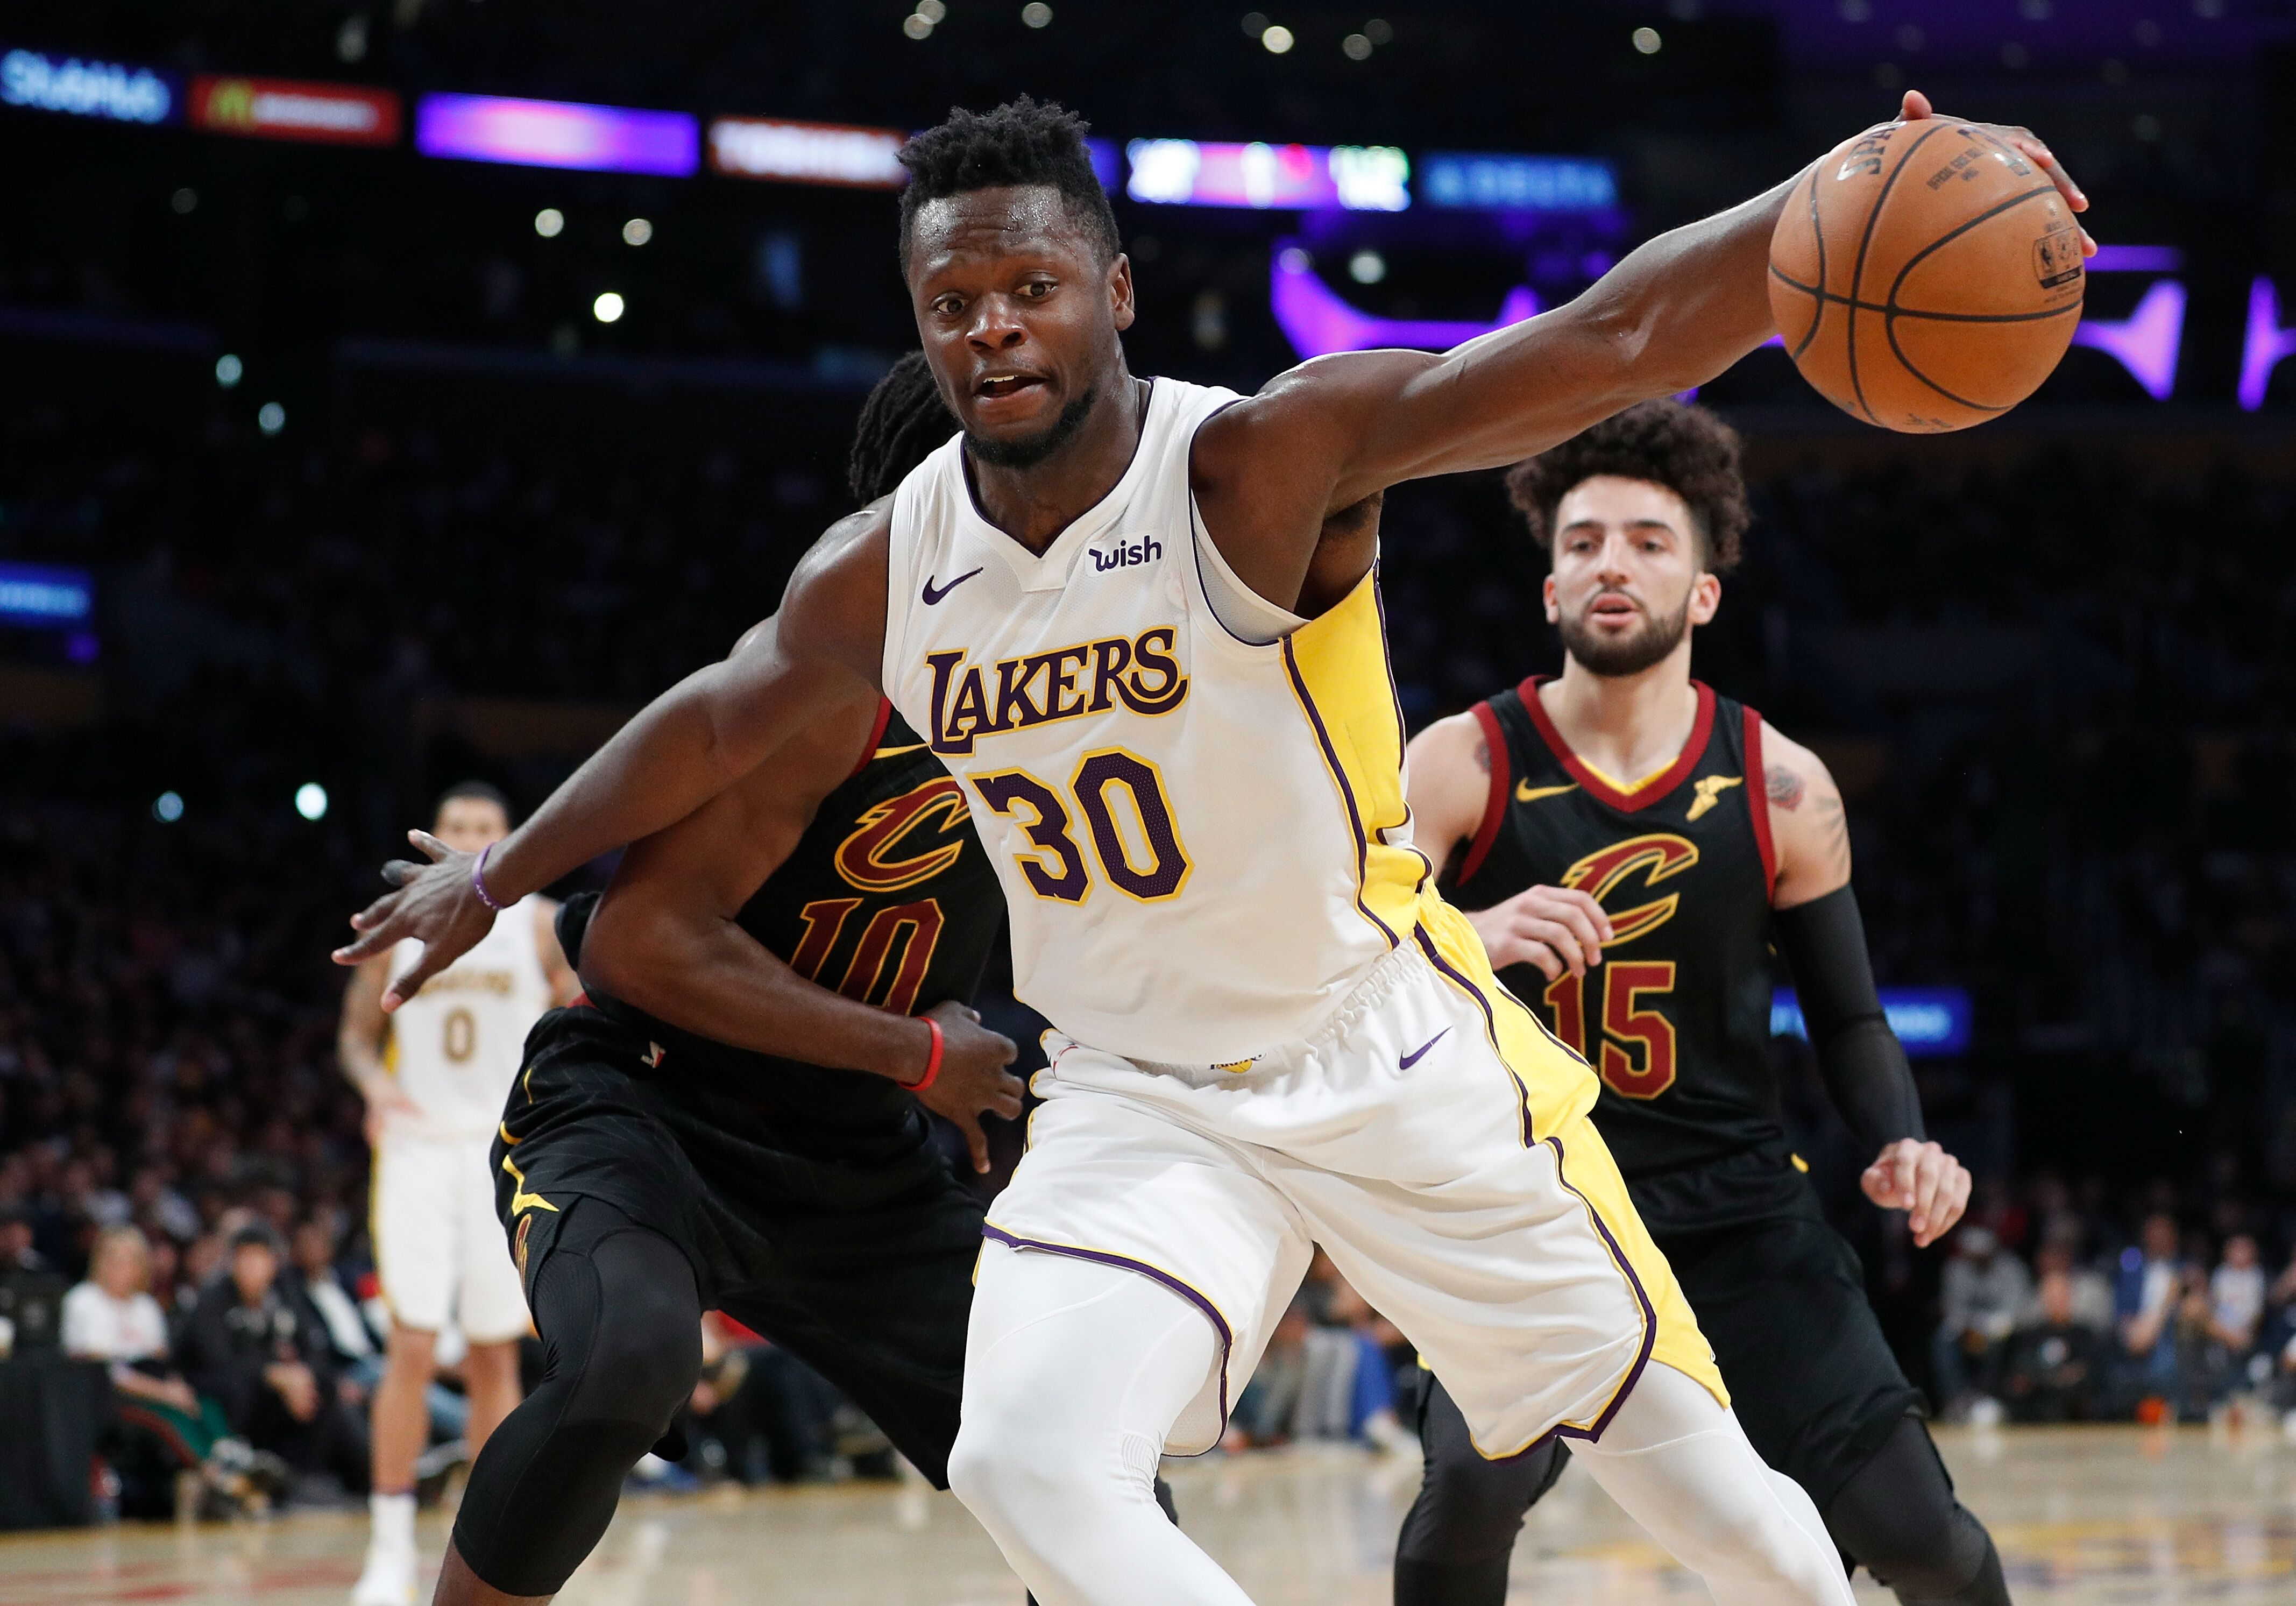 930684730-cleveland-cavaliers-v-los-angeles-lakers.jpg